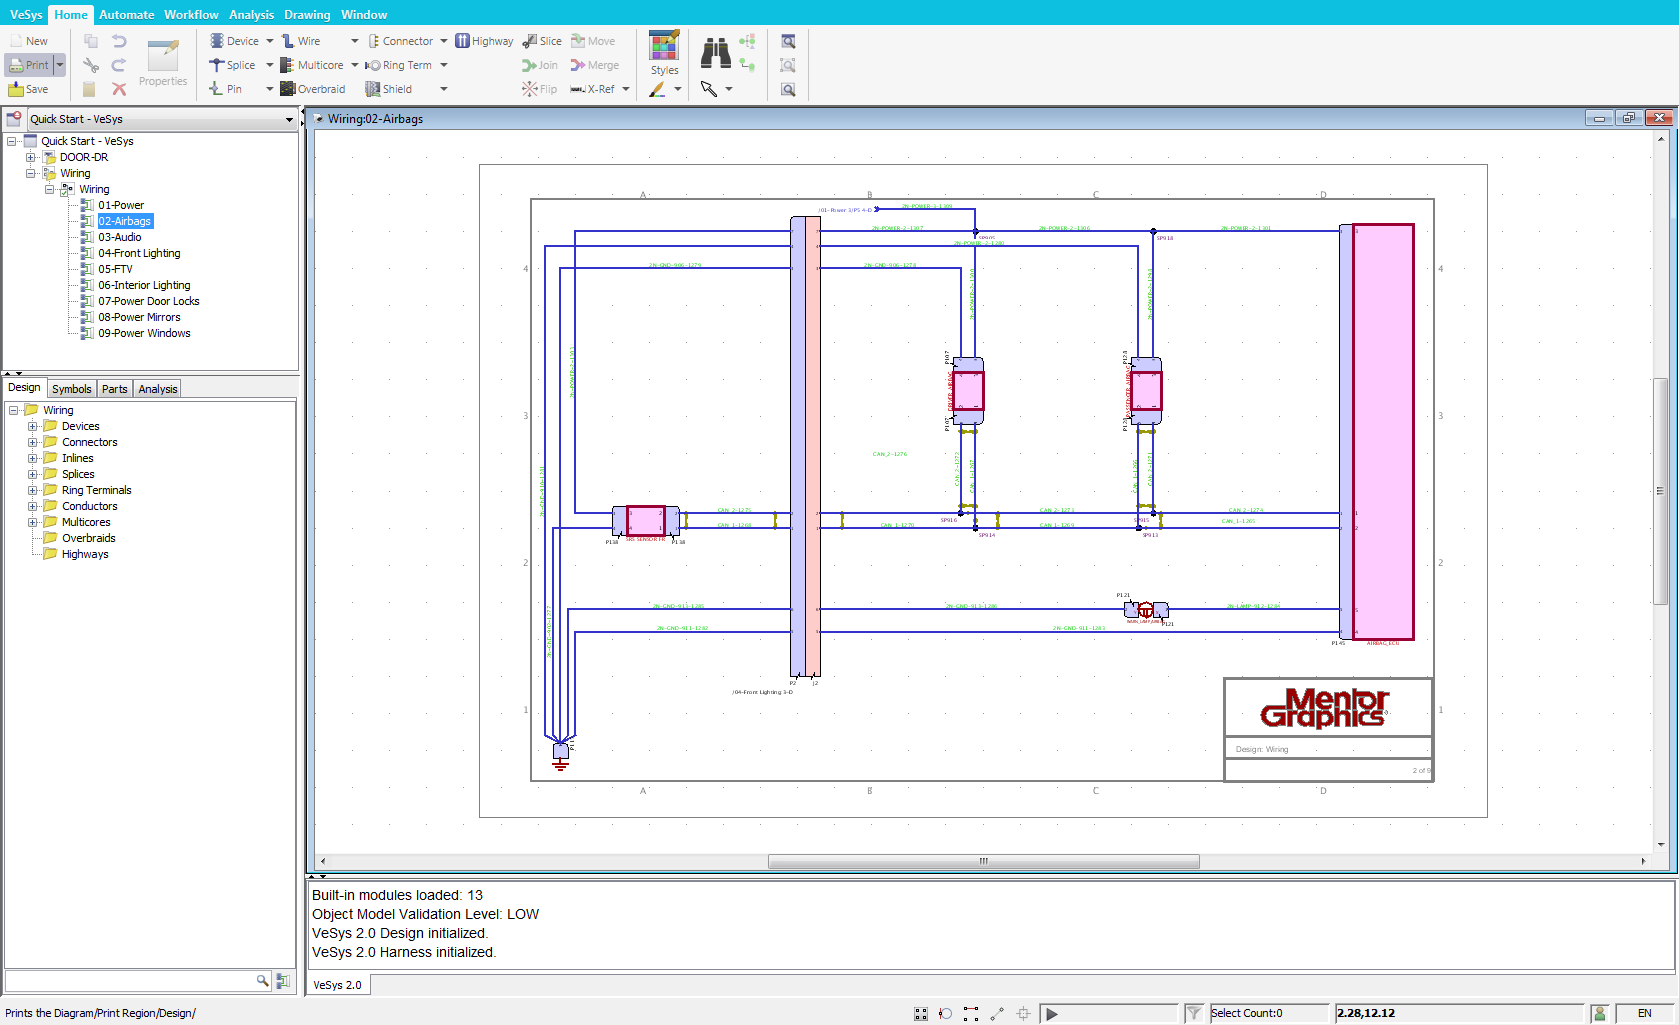 vesys design mentor graphics rh mentor com Toyota Alternator Wiring Harness Toyota Alternator Wiring Harness